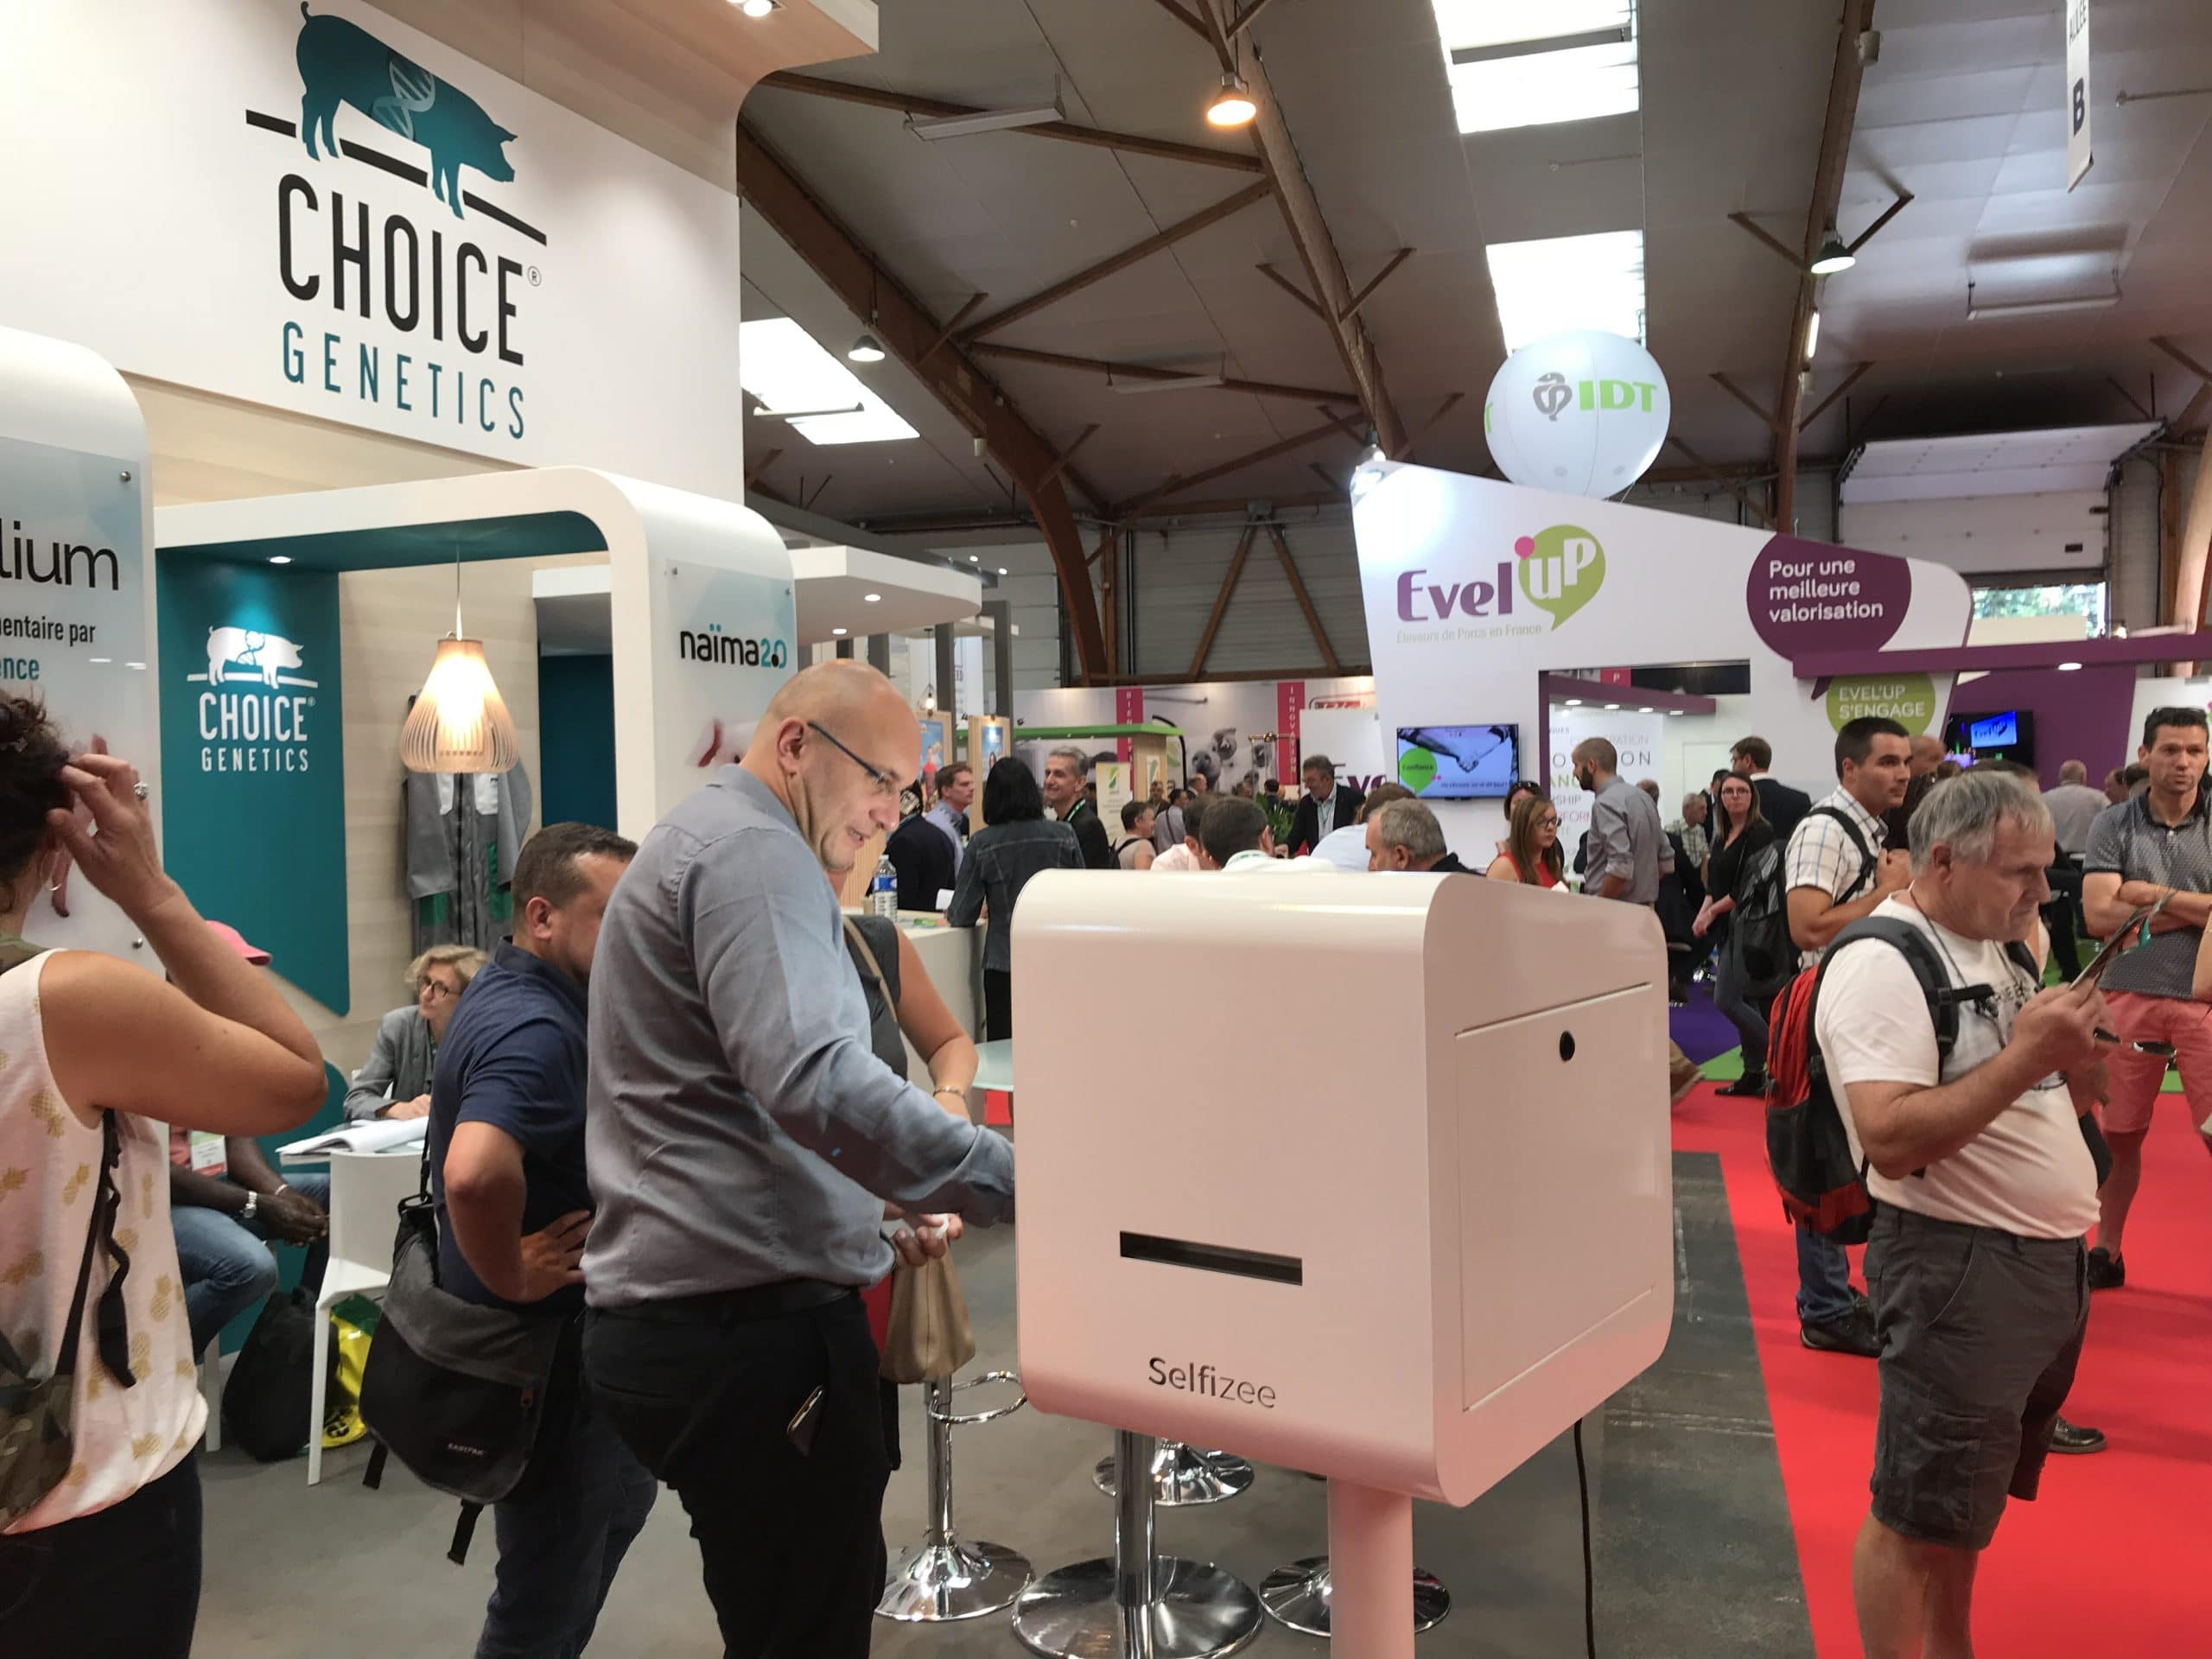 Salon SPACE 2018 borne photo au stand de l'entreprise Choice Genetics pour une animation selfie